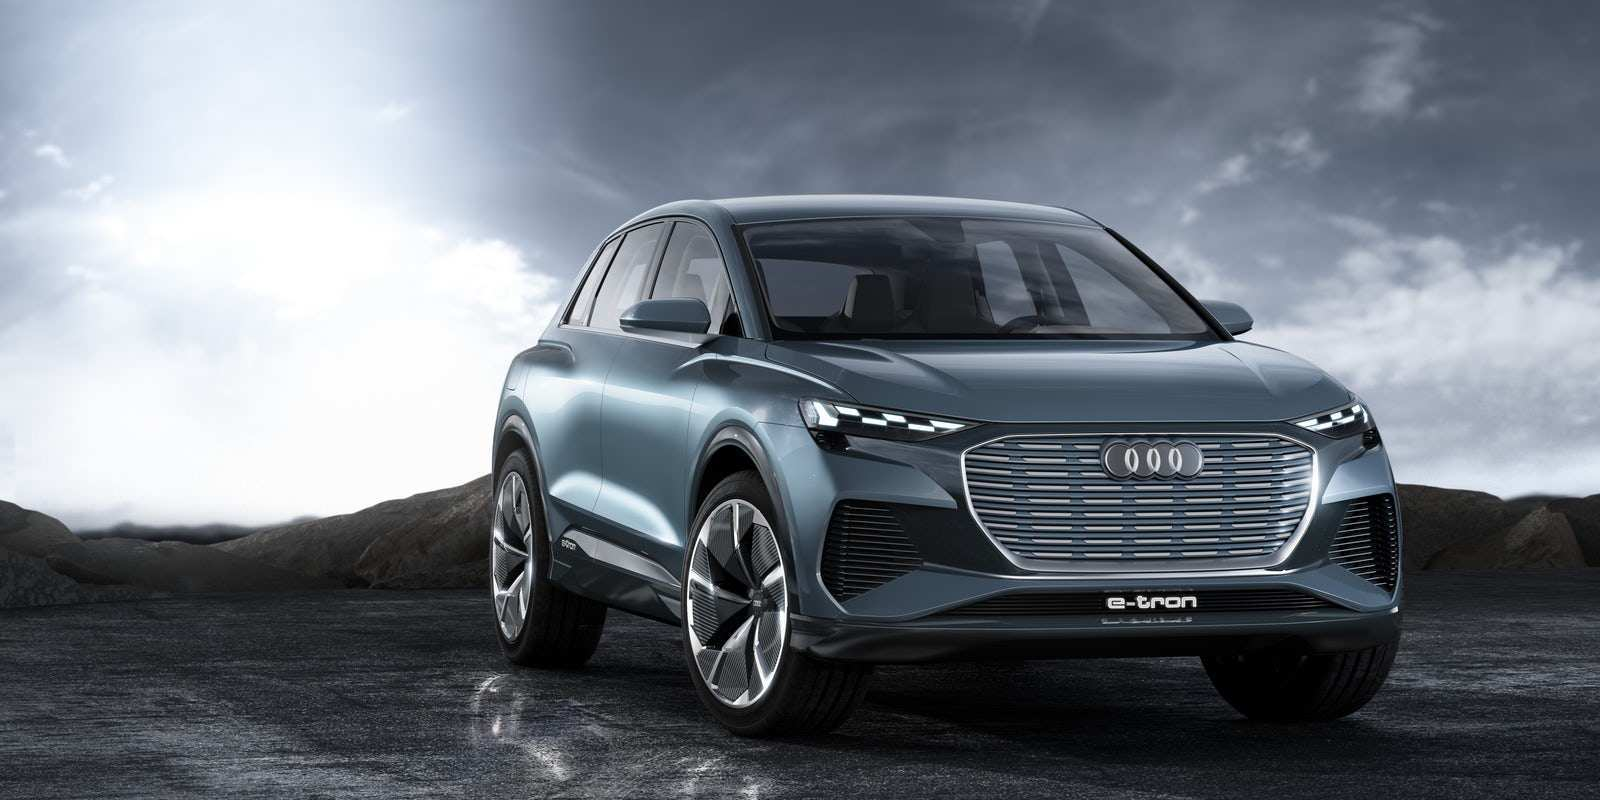 77 The Audi Hybrid Suv 2020 Spy Shoot for Audi Hybrid Suv 2020